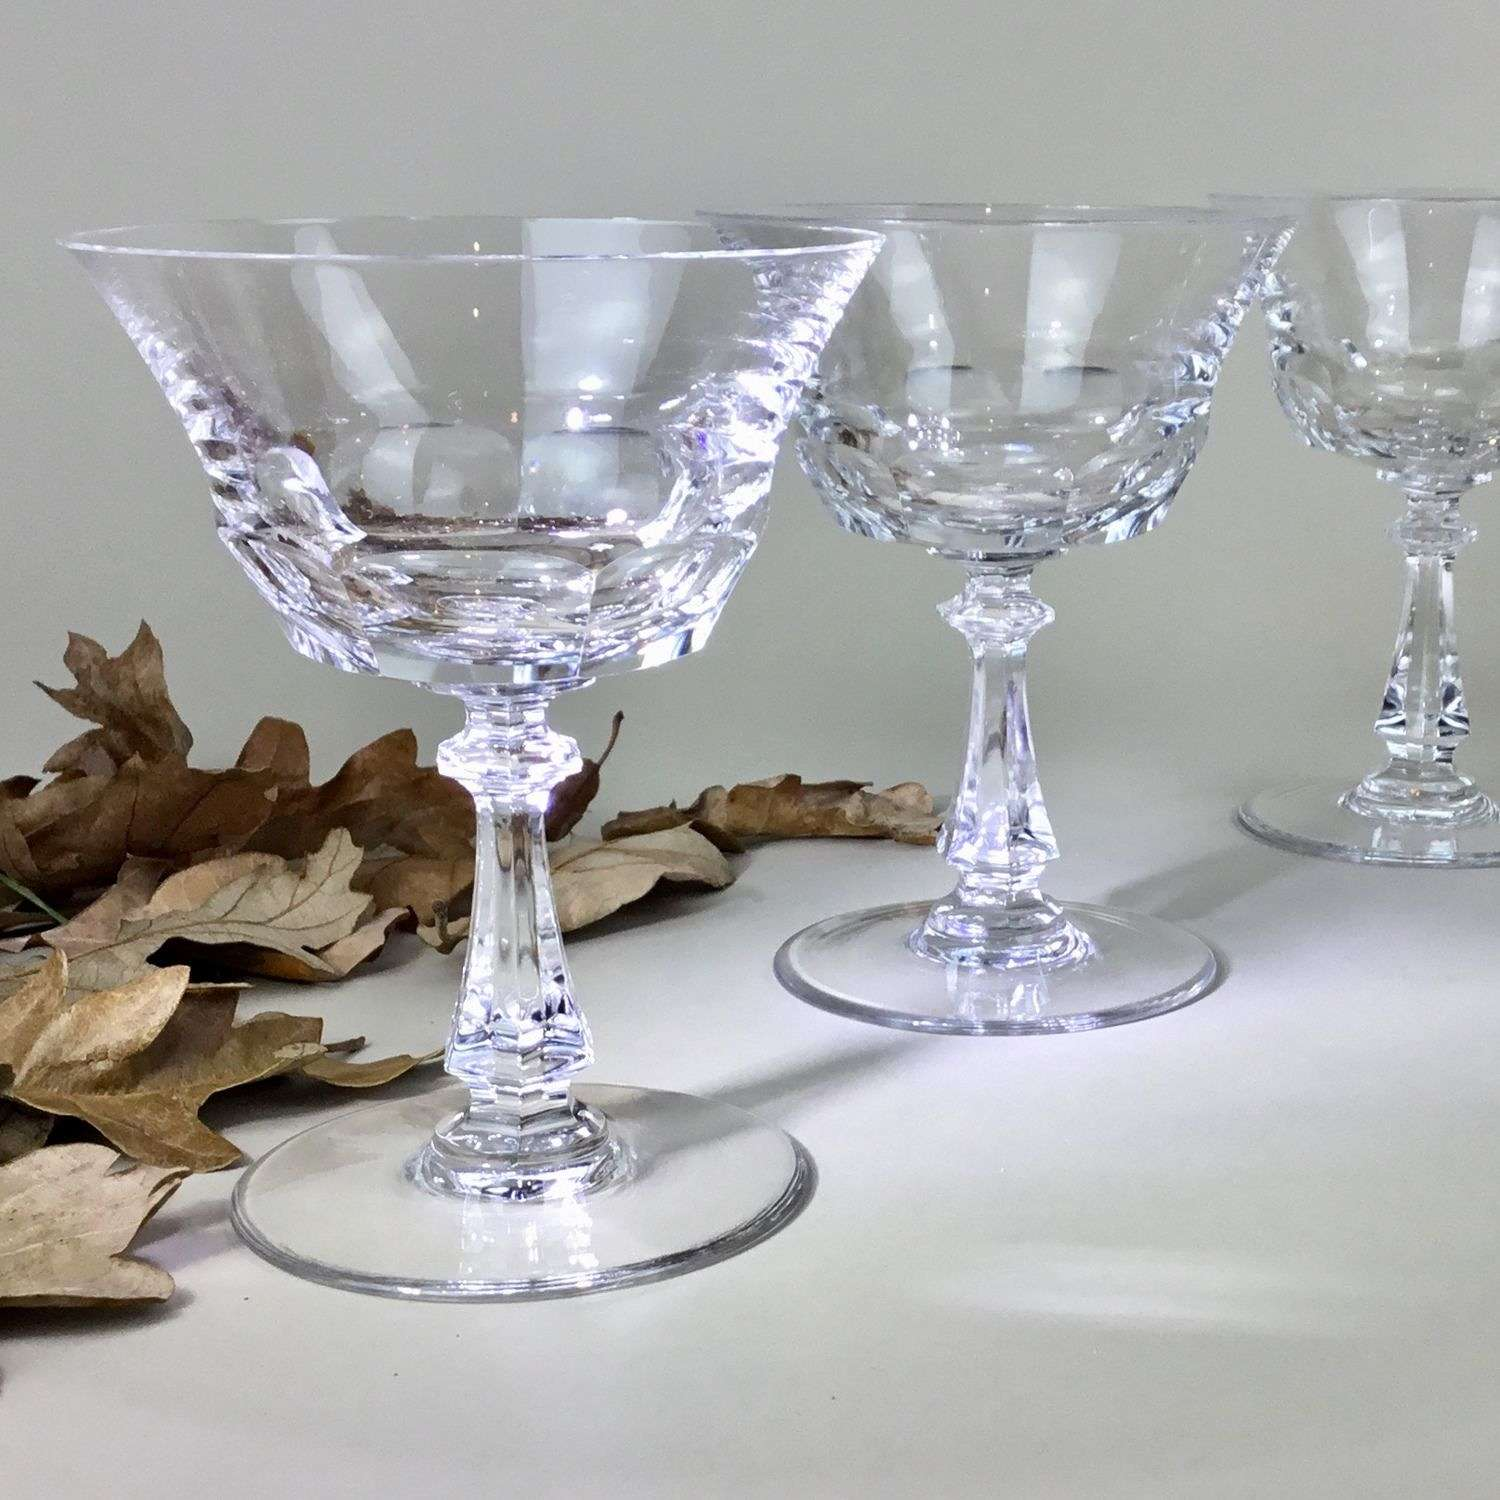 Sensational set of Val St Lambert crystal champagne coupes